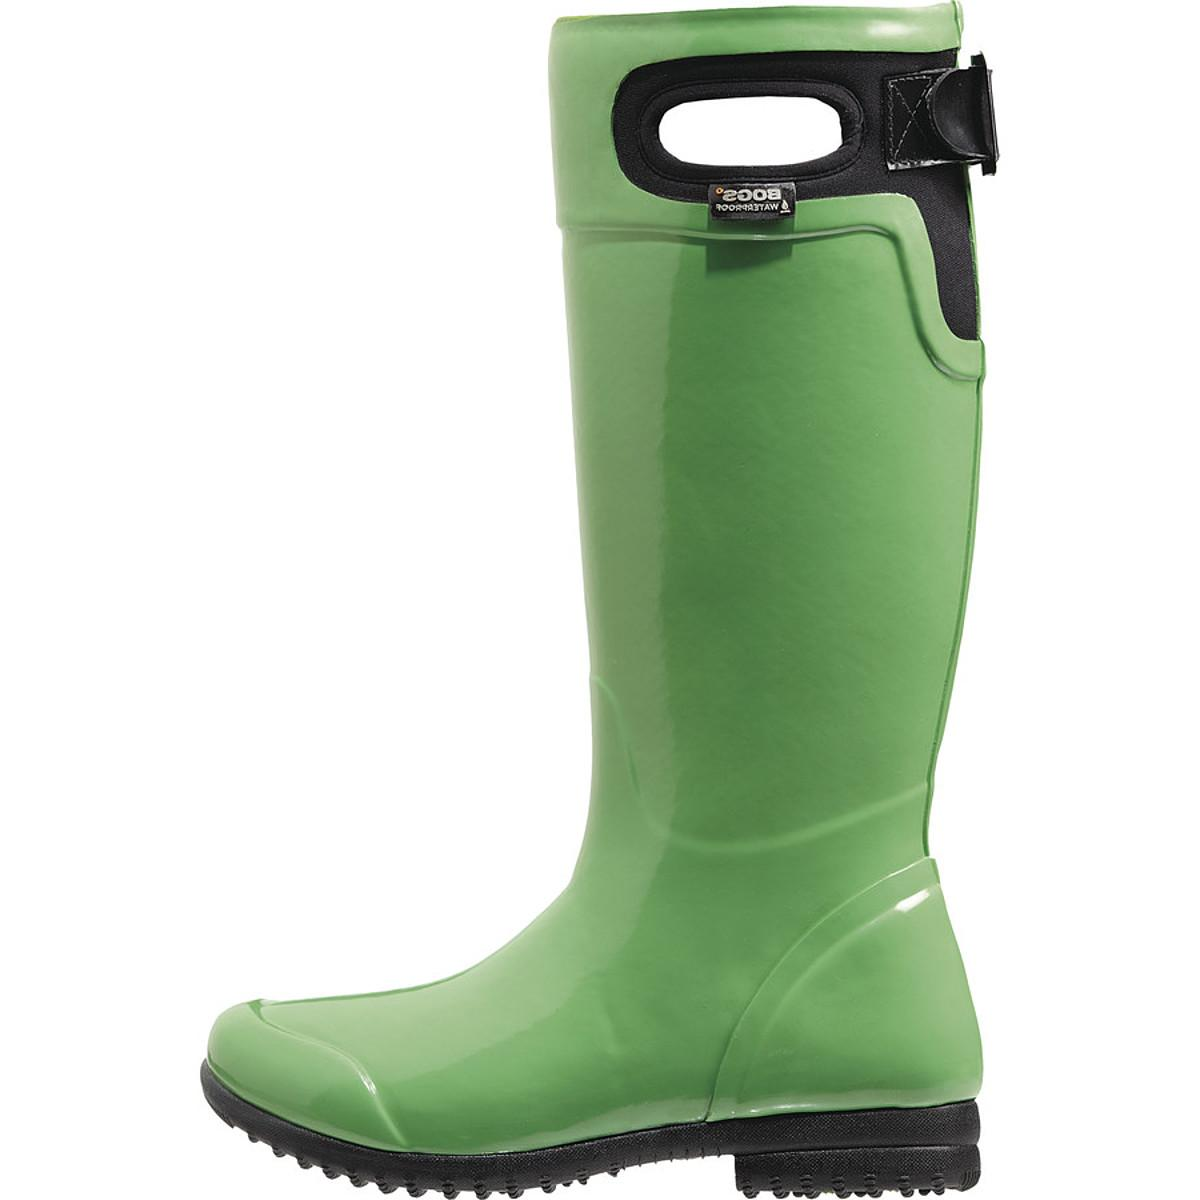 Bogs Tacoma Tall Boot - Women's Leaf Green, 8.0